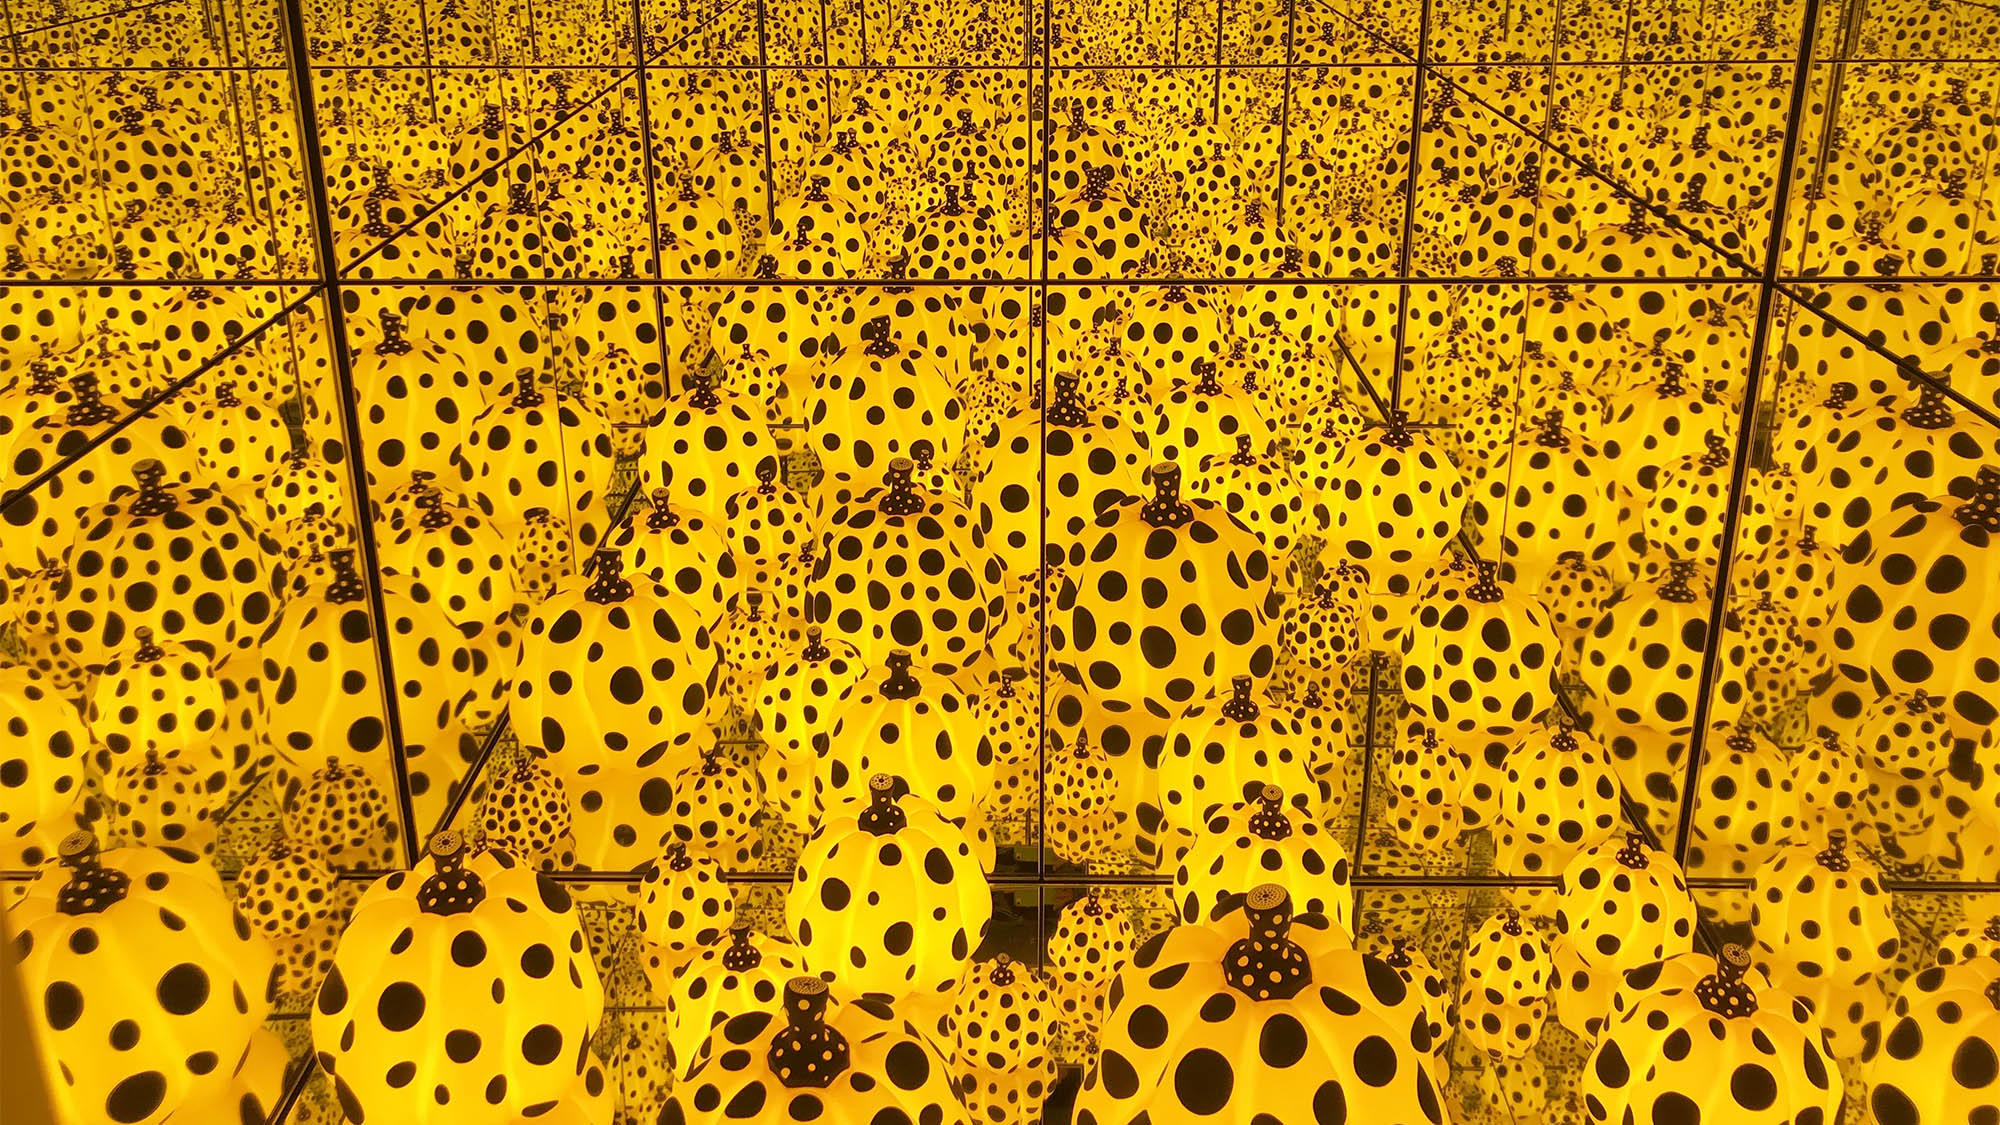 Yellow Pumpkin Black Polka Dot Kusama Infinity Room